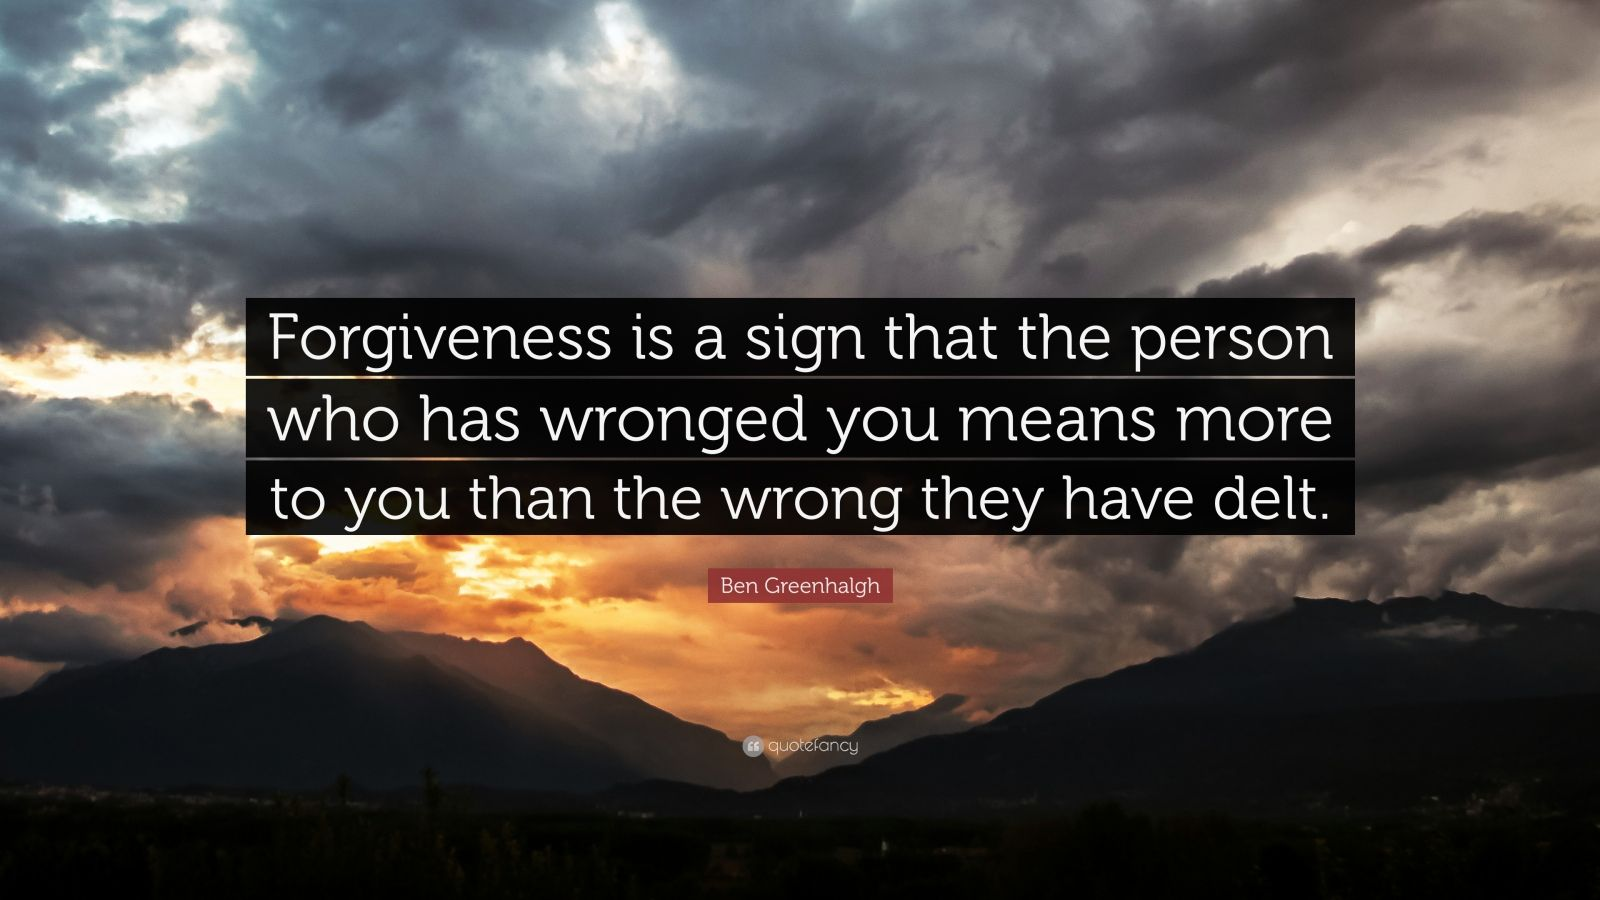 "Ben Greenhalgh Quote: ""Forgiveness is a sign that the person who has wronged you means more to you than the wrong they have delt."""